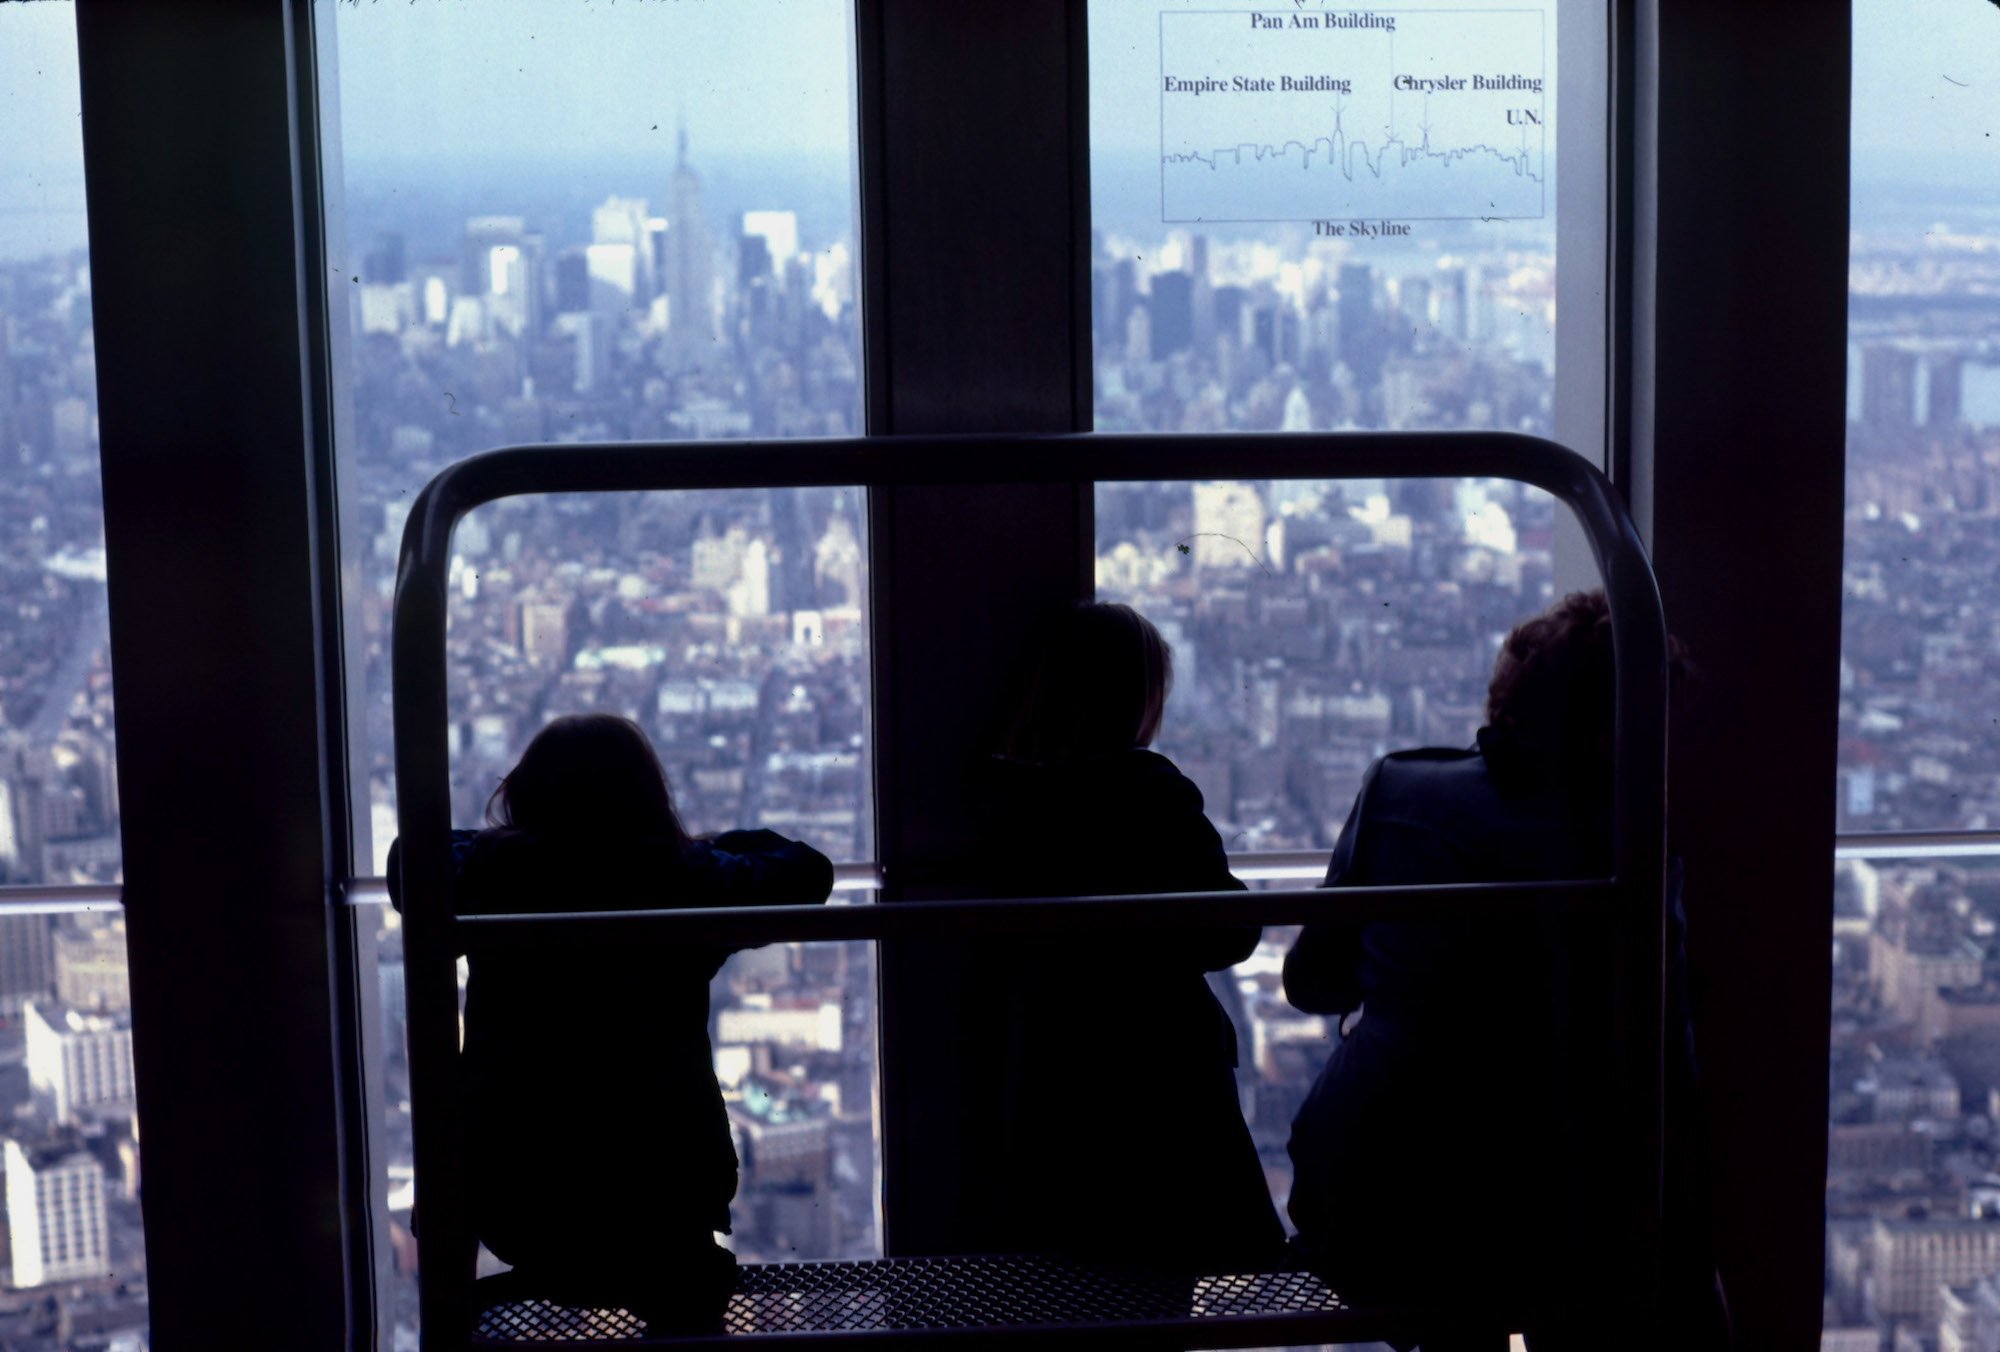 New York 1979 from WTC